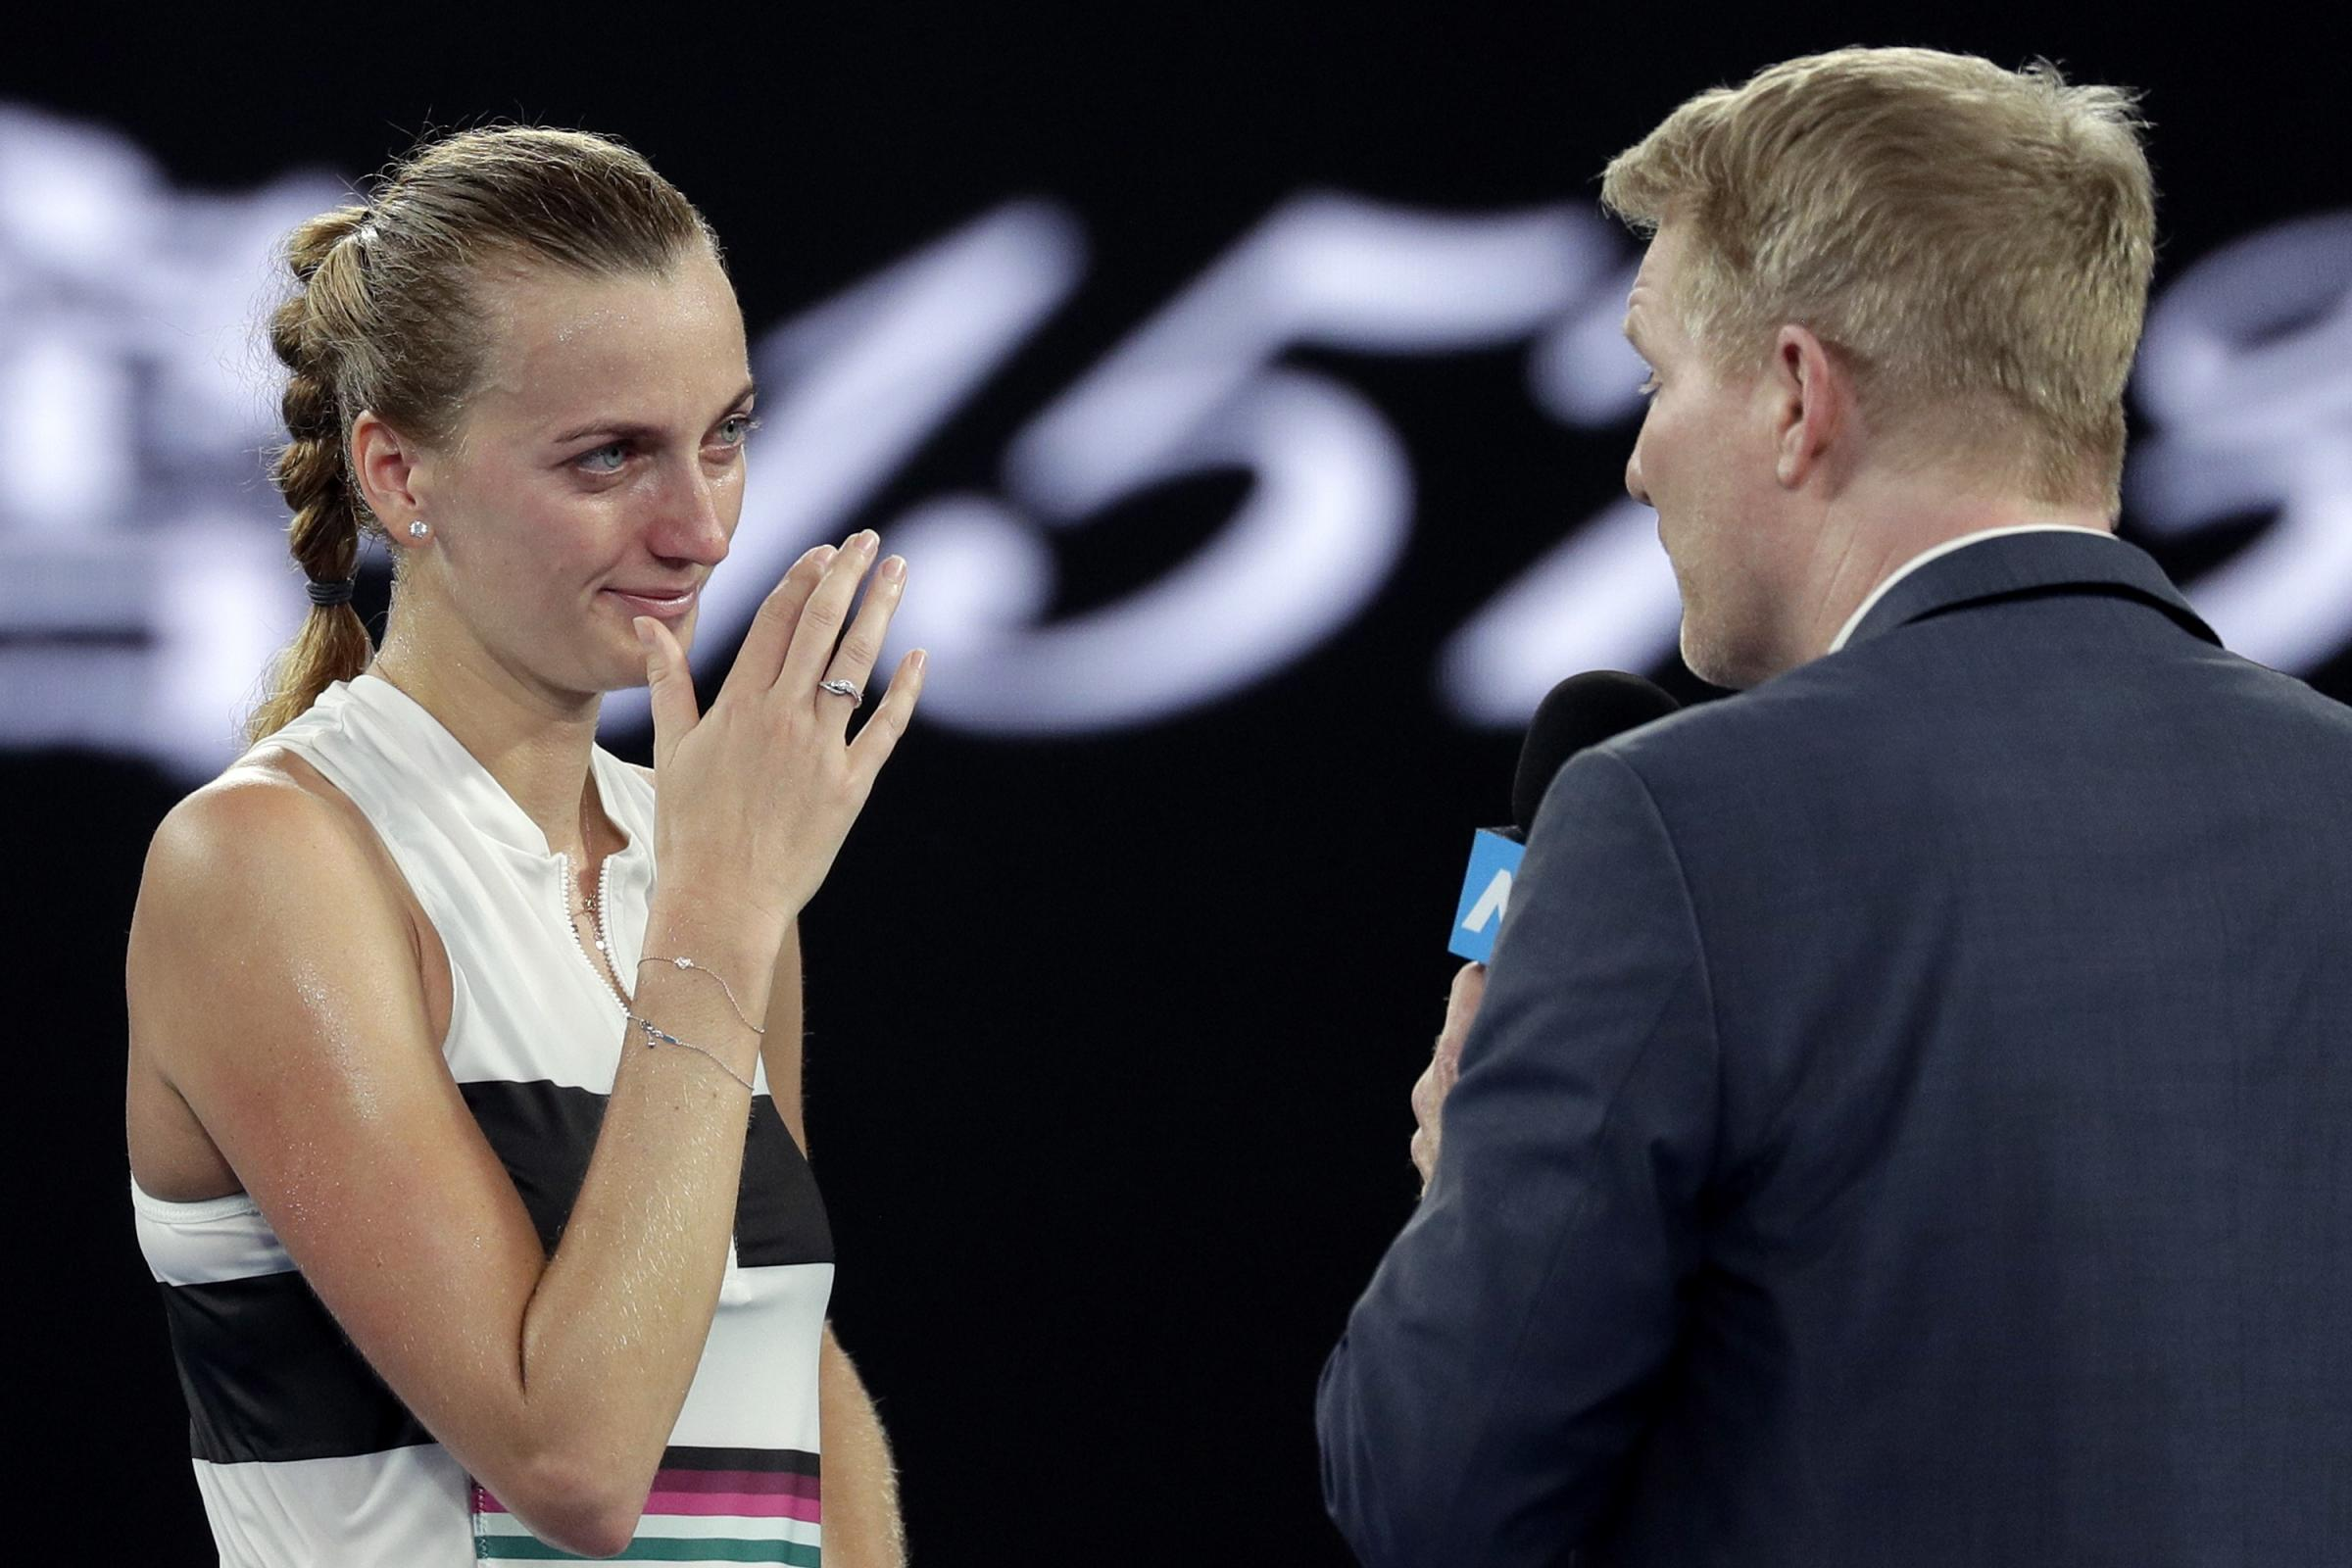 Petra Kvitova became emotional during her on-court interview with Jim Courier